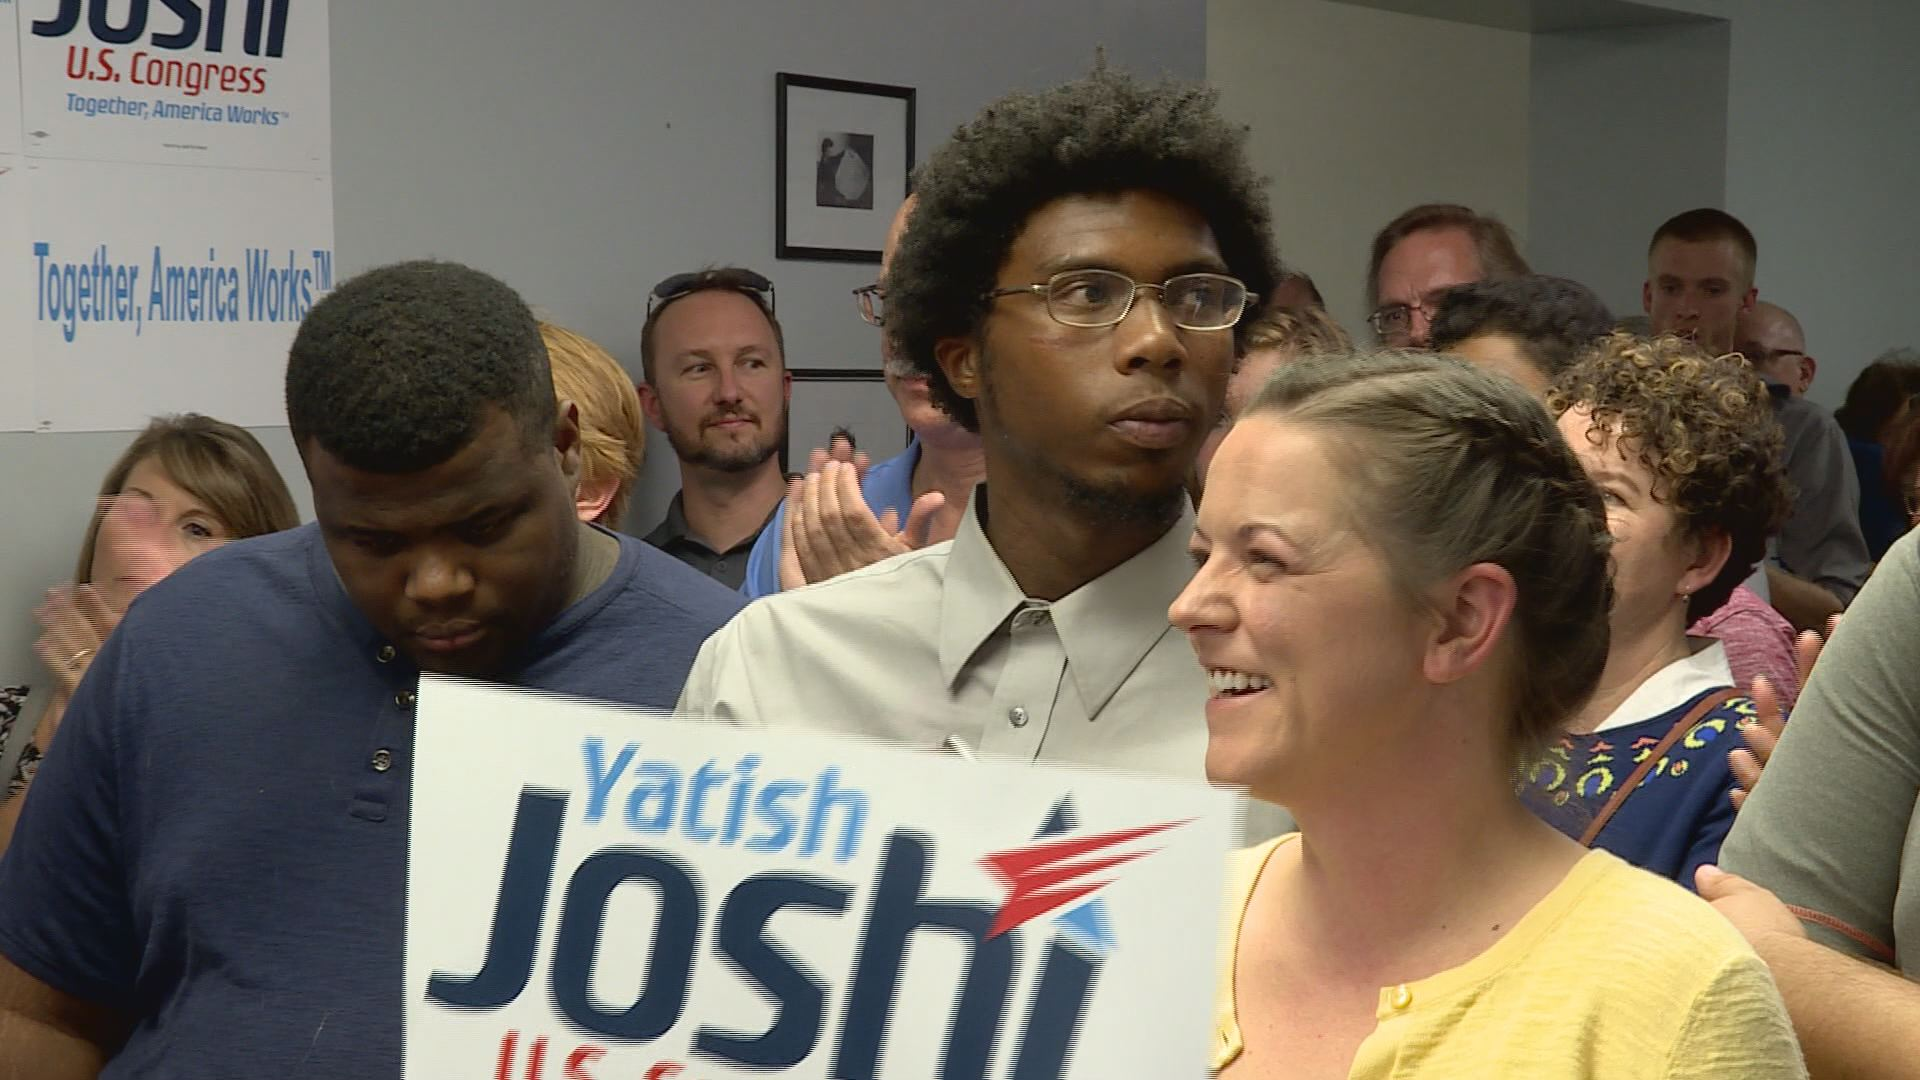 Meet your second Democratic candidate for Congress // WSBT 22